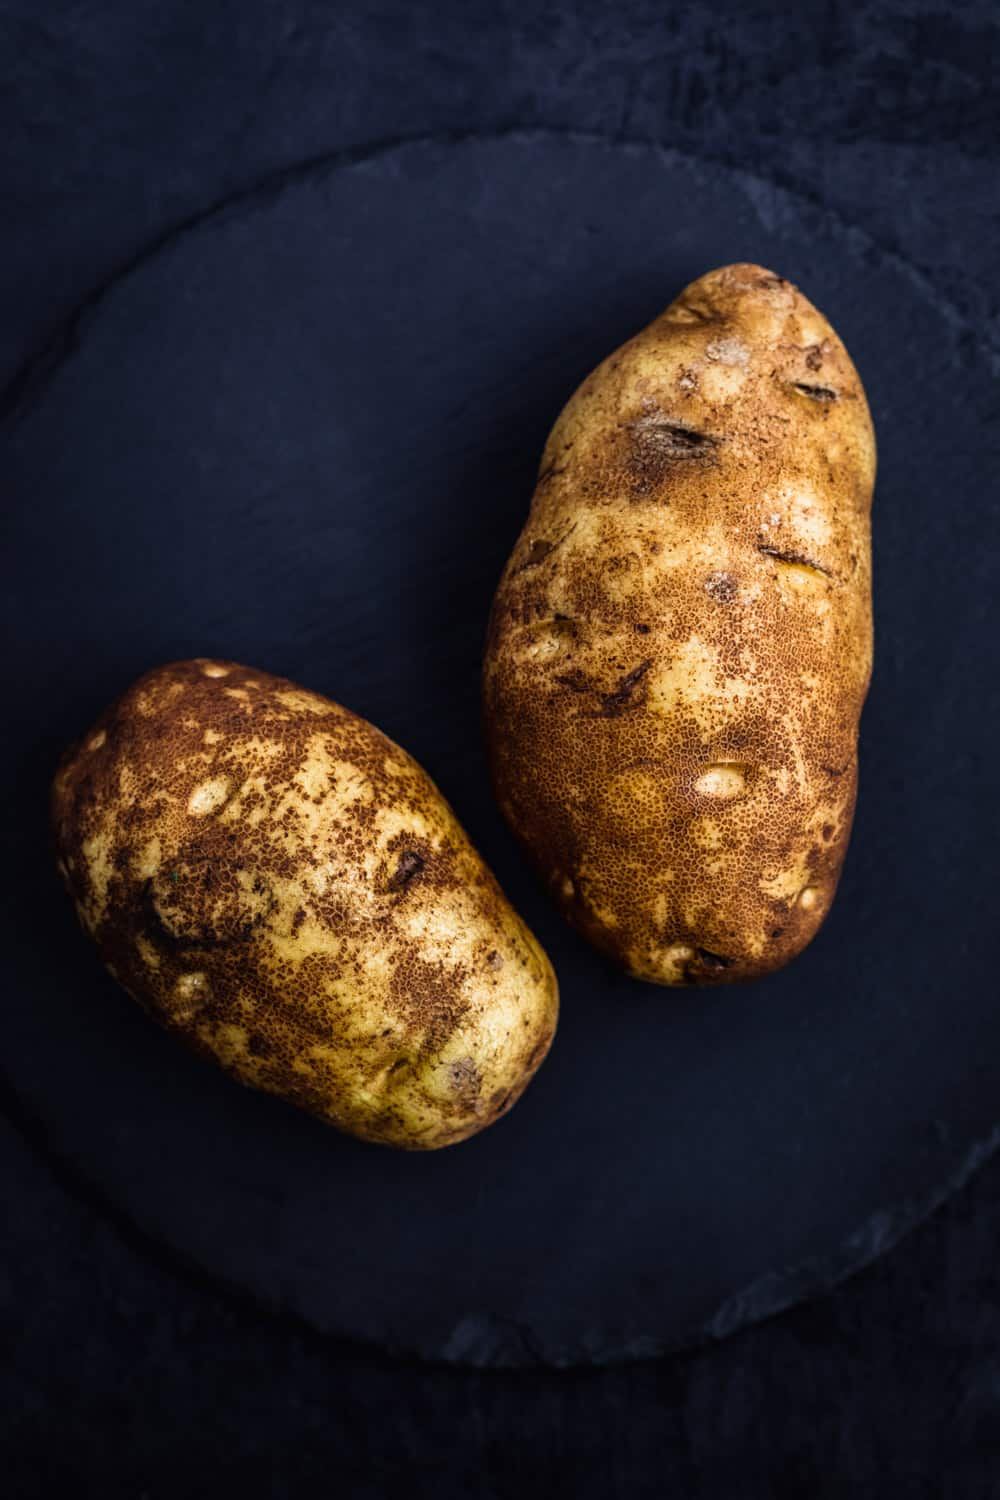 2 russet potatoes, screened and unpeeled on darrk background.